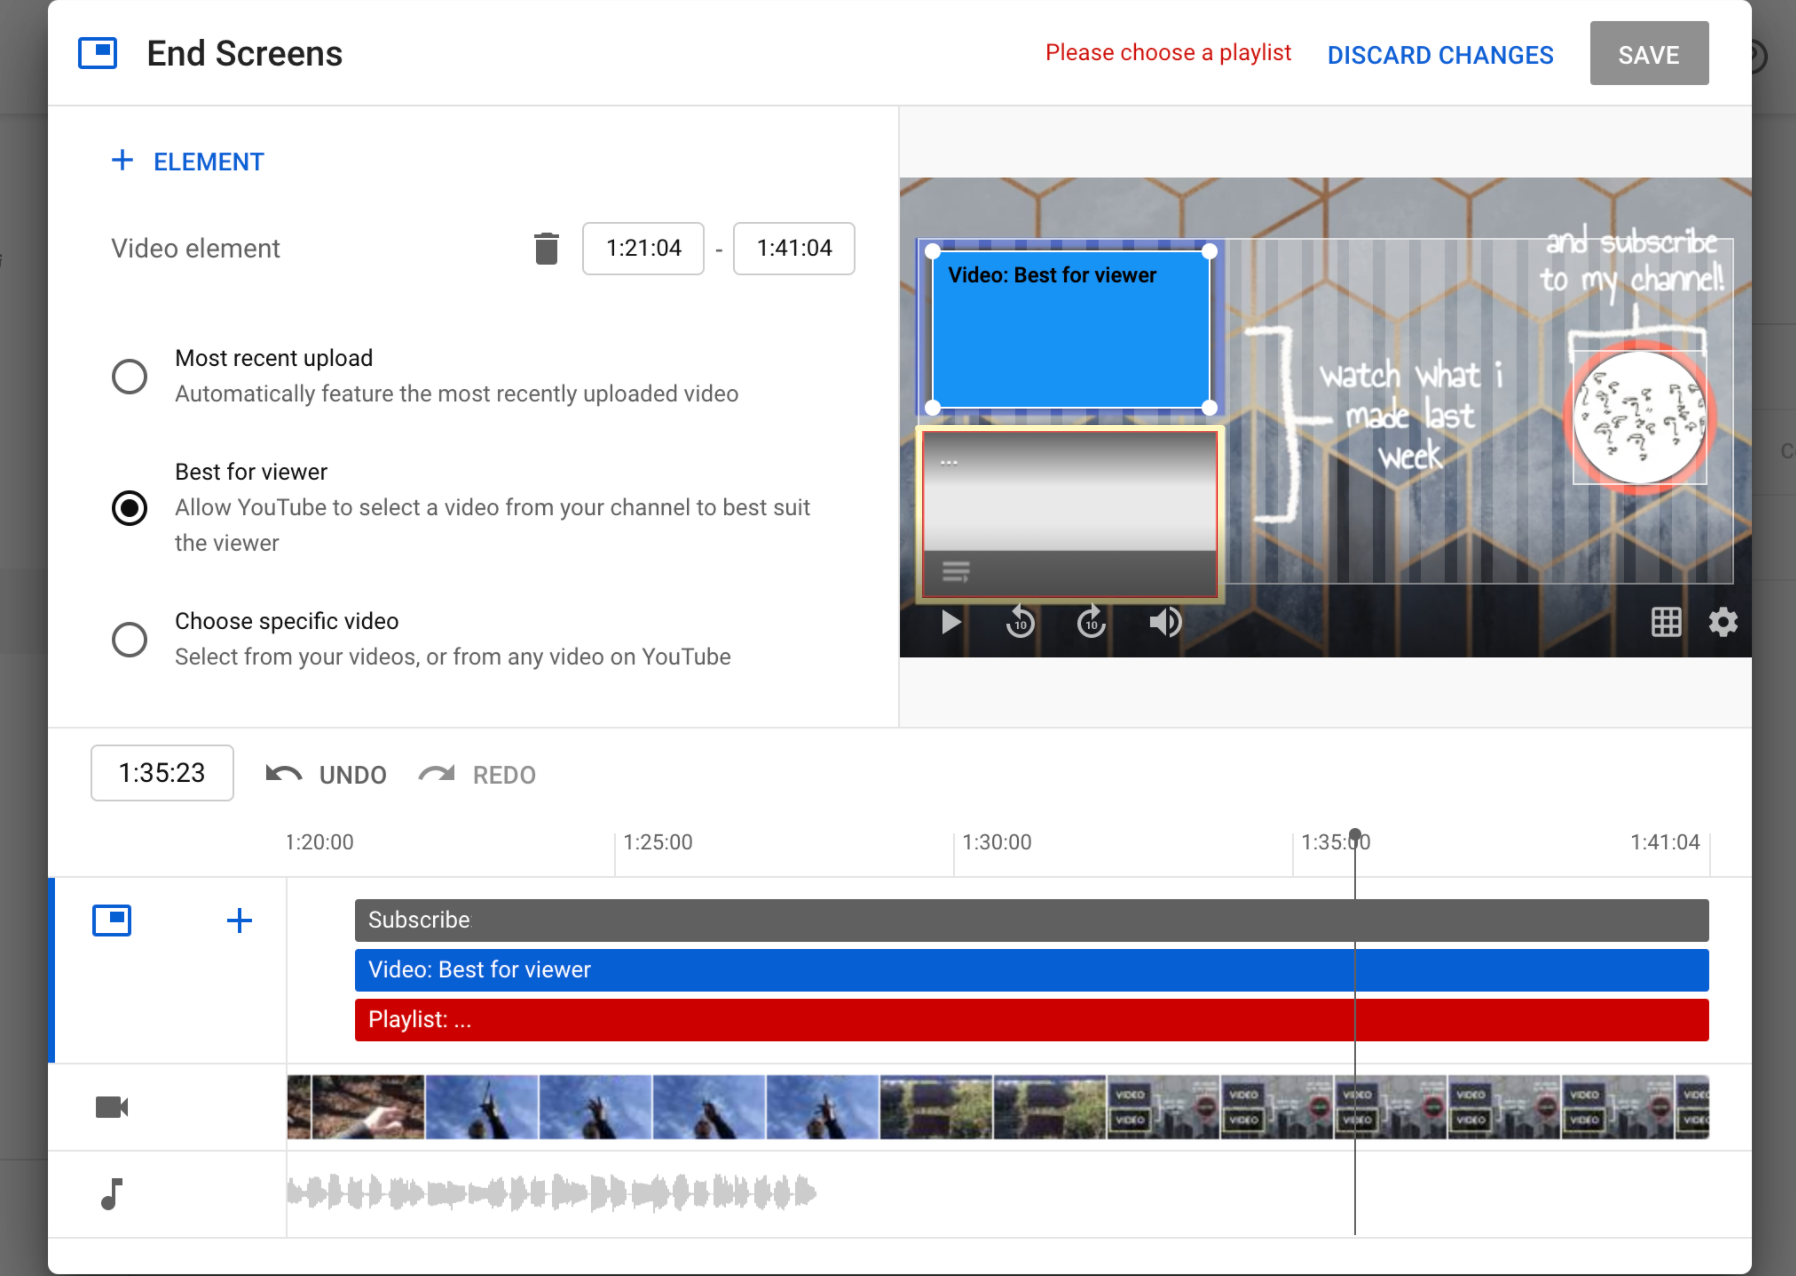 A screenshot from YouTube, showing the process of adding custom end screens to your videos.